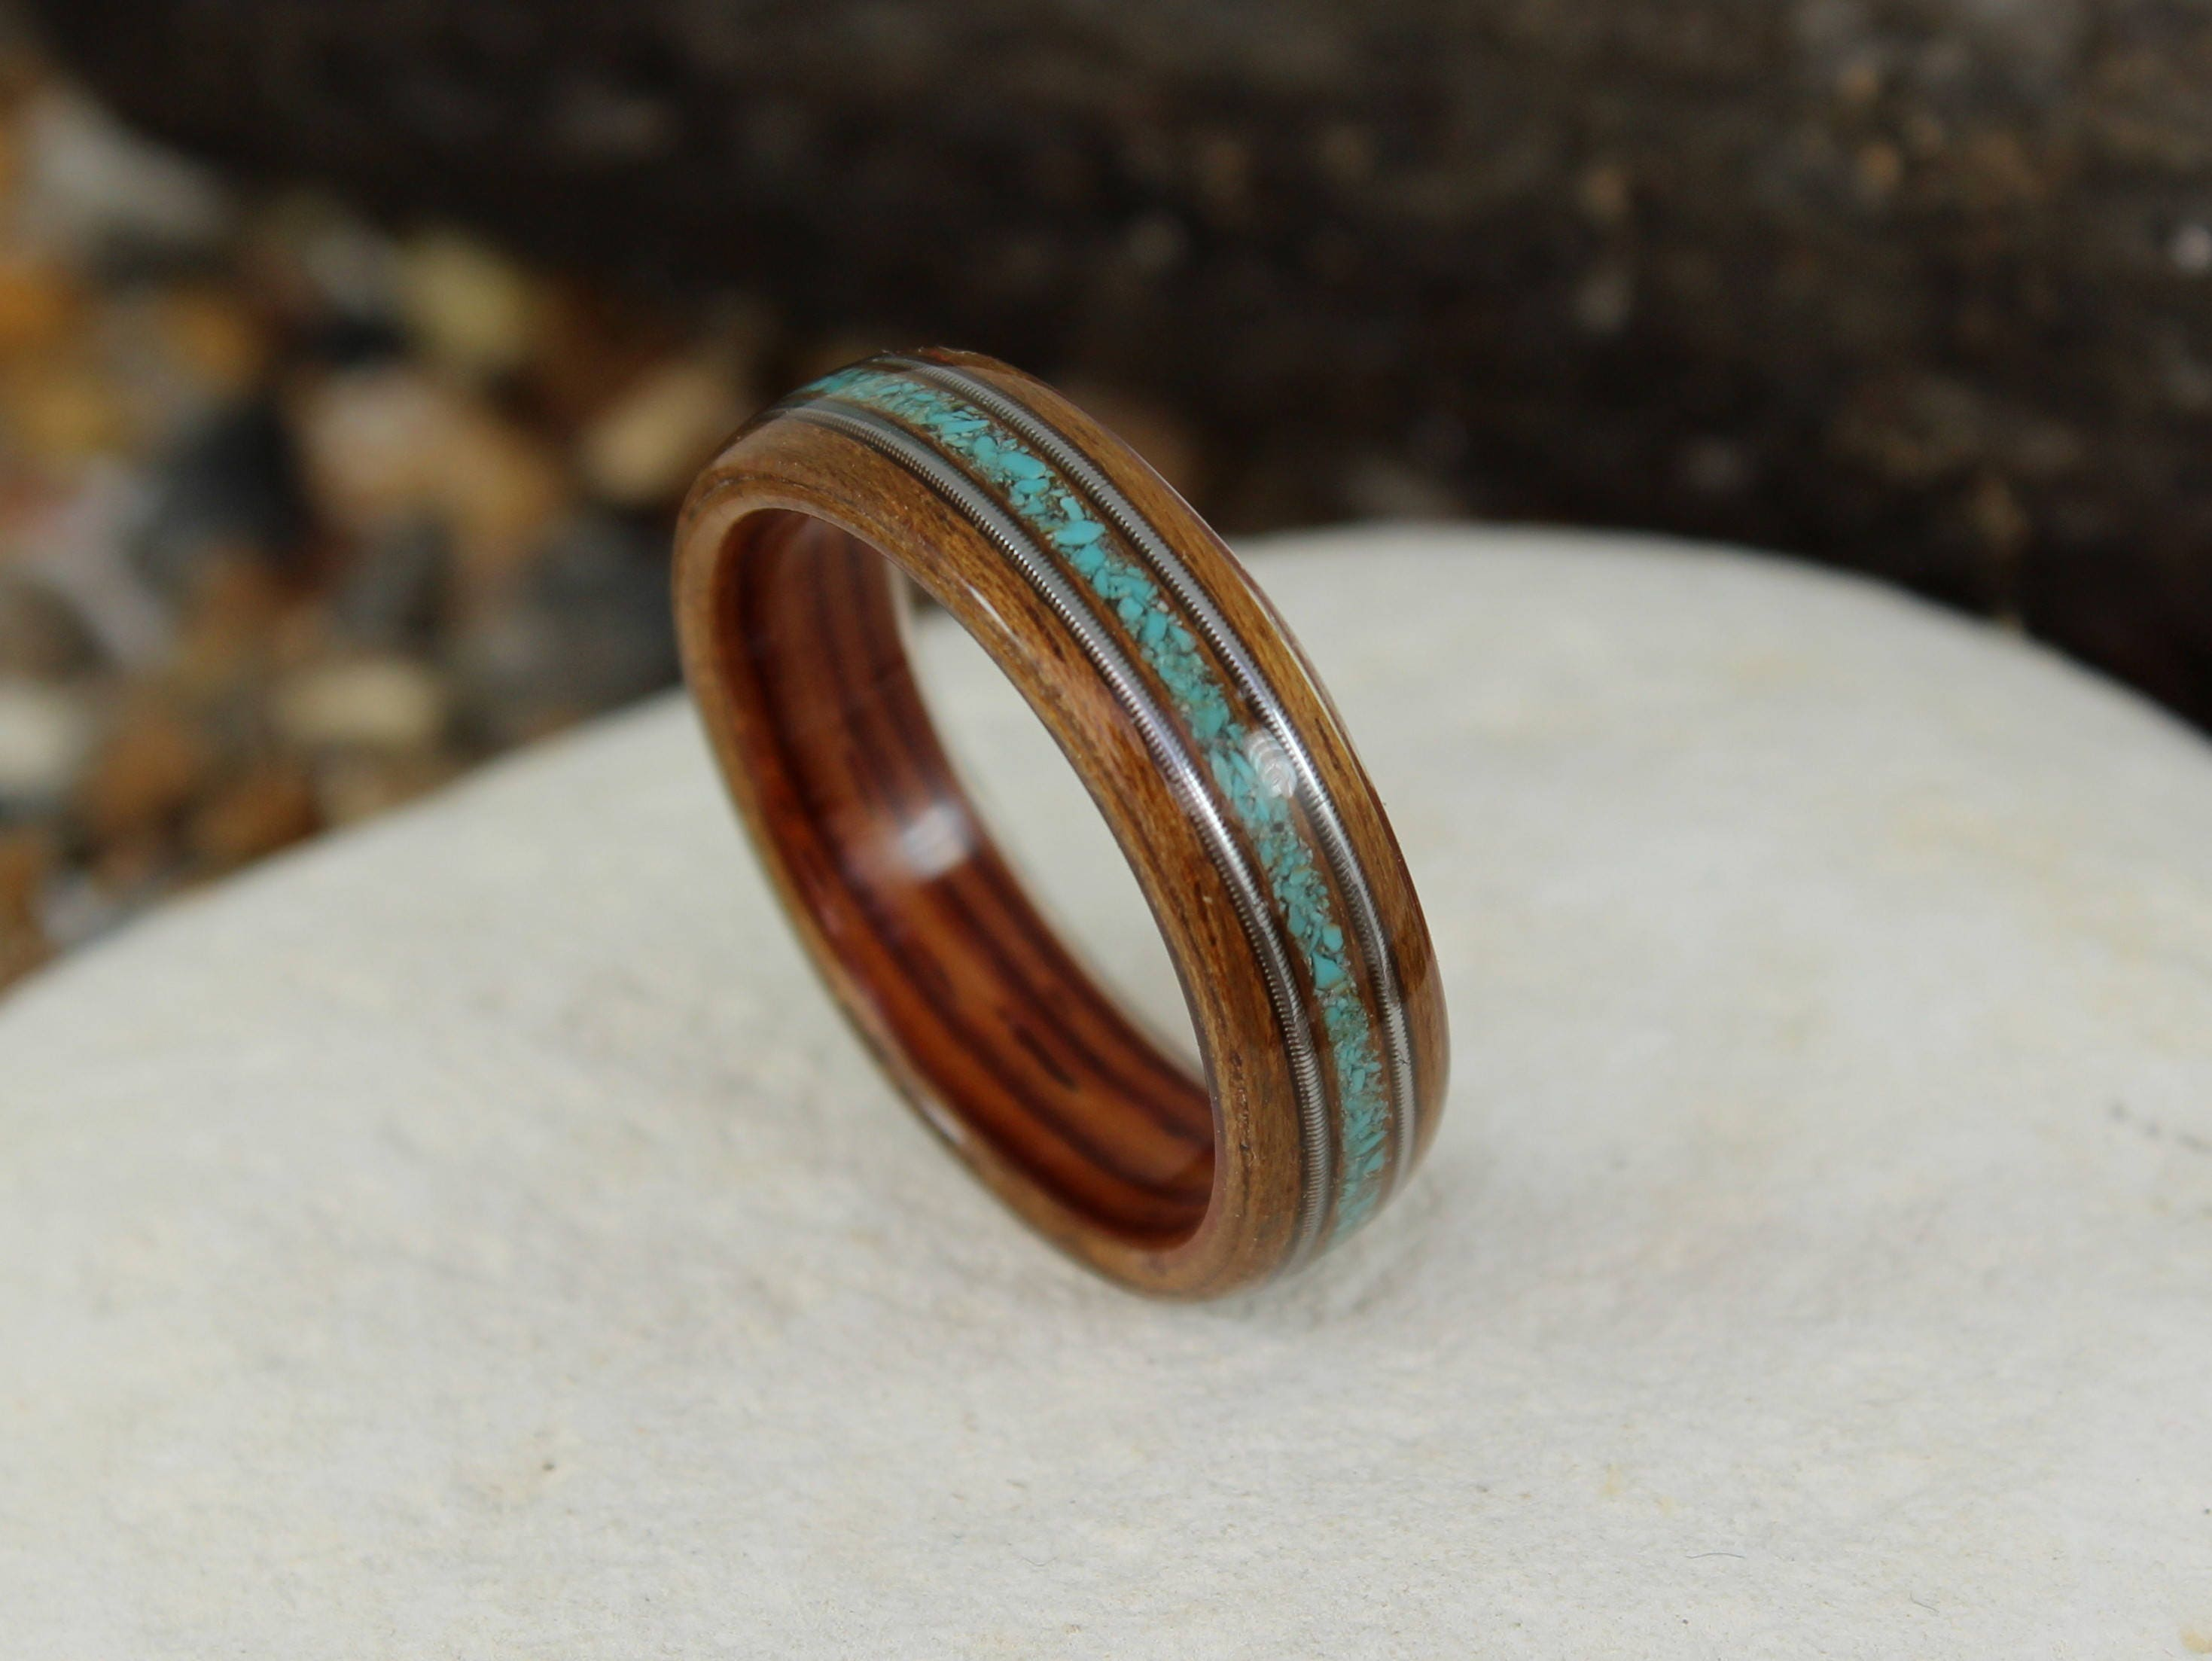 rings inlay overstock vance jewelry product men today watches band mens titanium s free co shipping abalone wedding